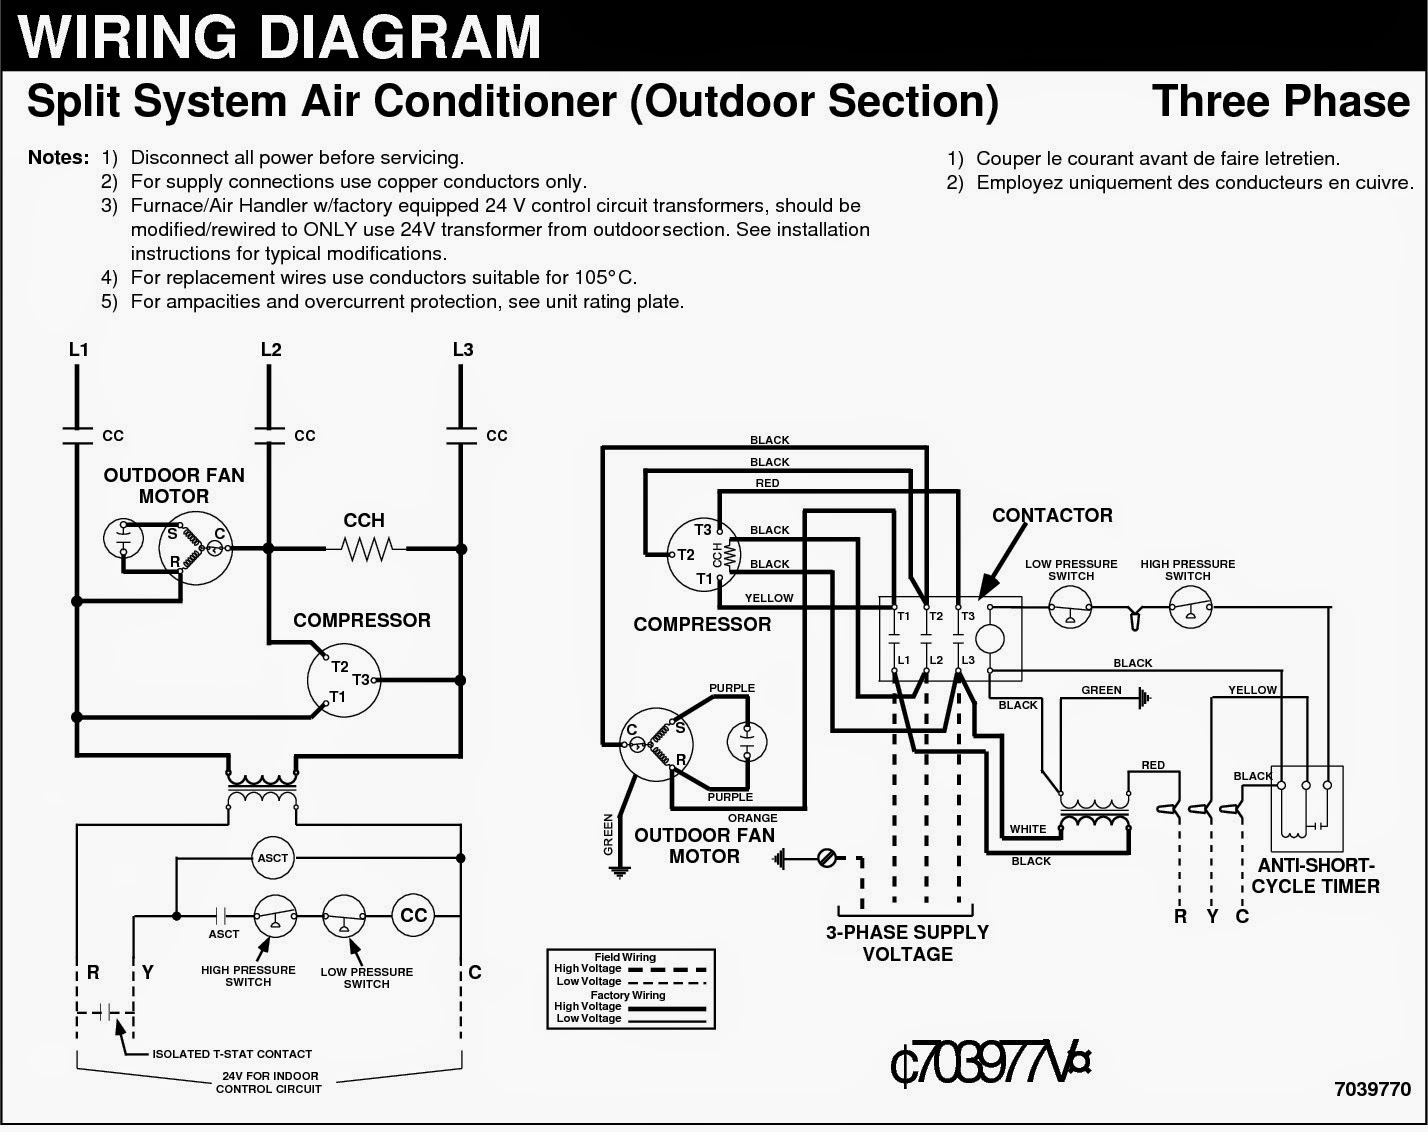 Electric Wire Diagram : Electrical wiring diagrams for air conditioning systems